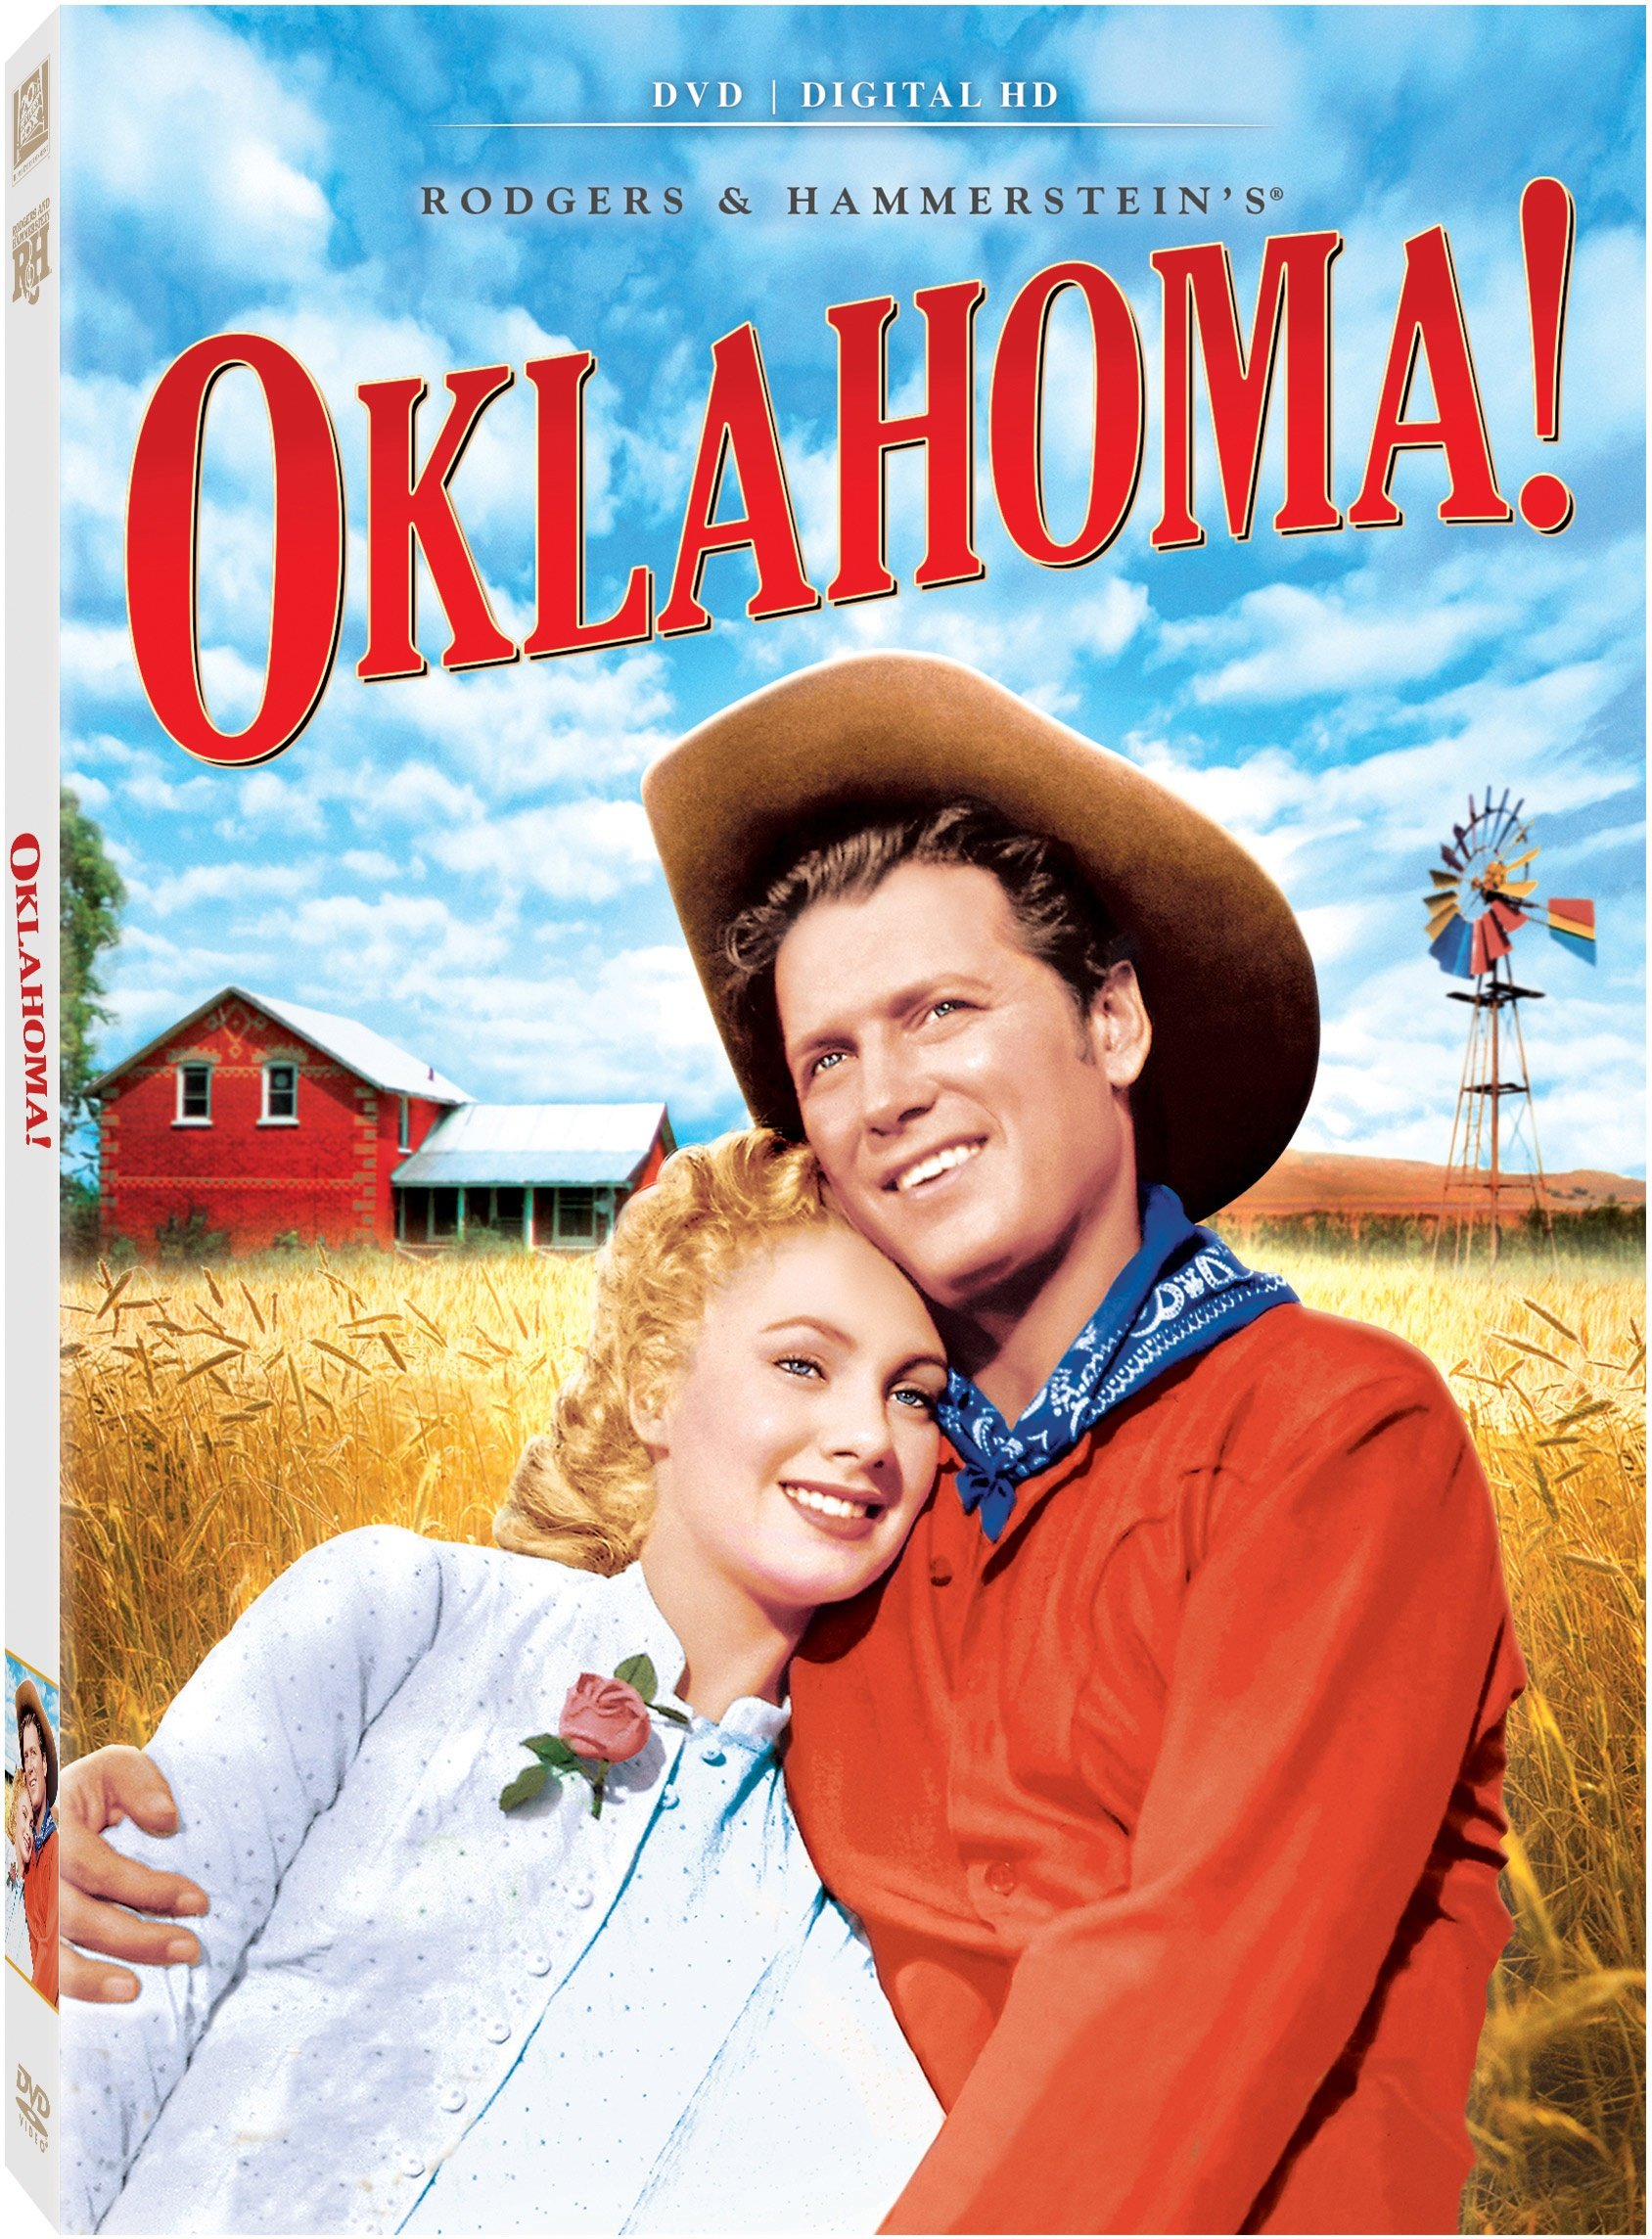 DVD : Oklahoma! (Widescreen, Dolby, 2 Pack, 2 Disc)